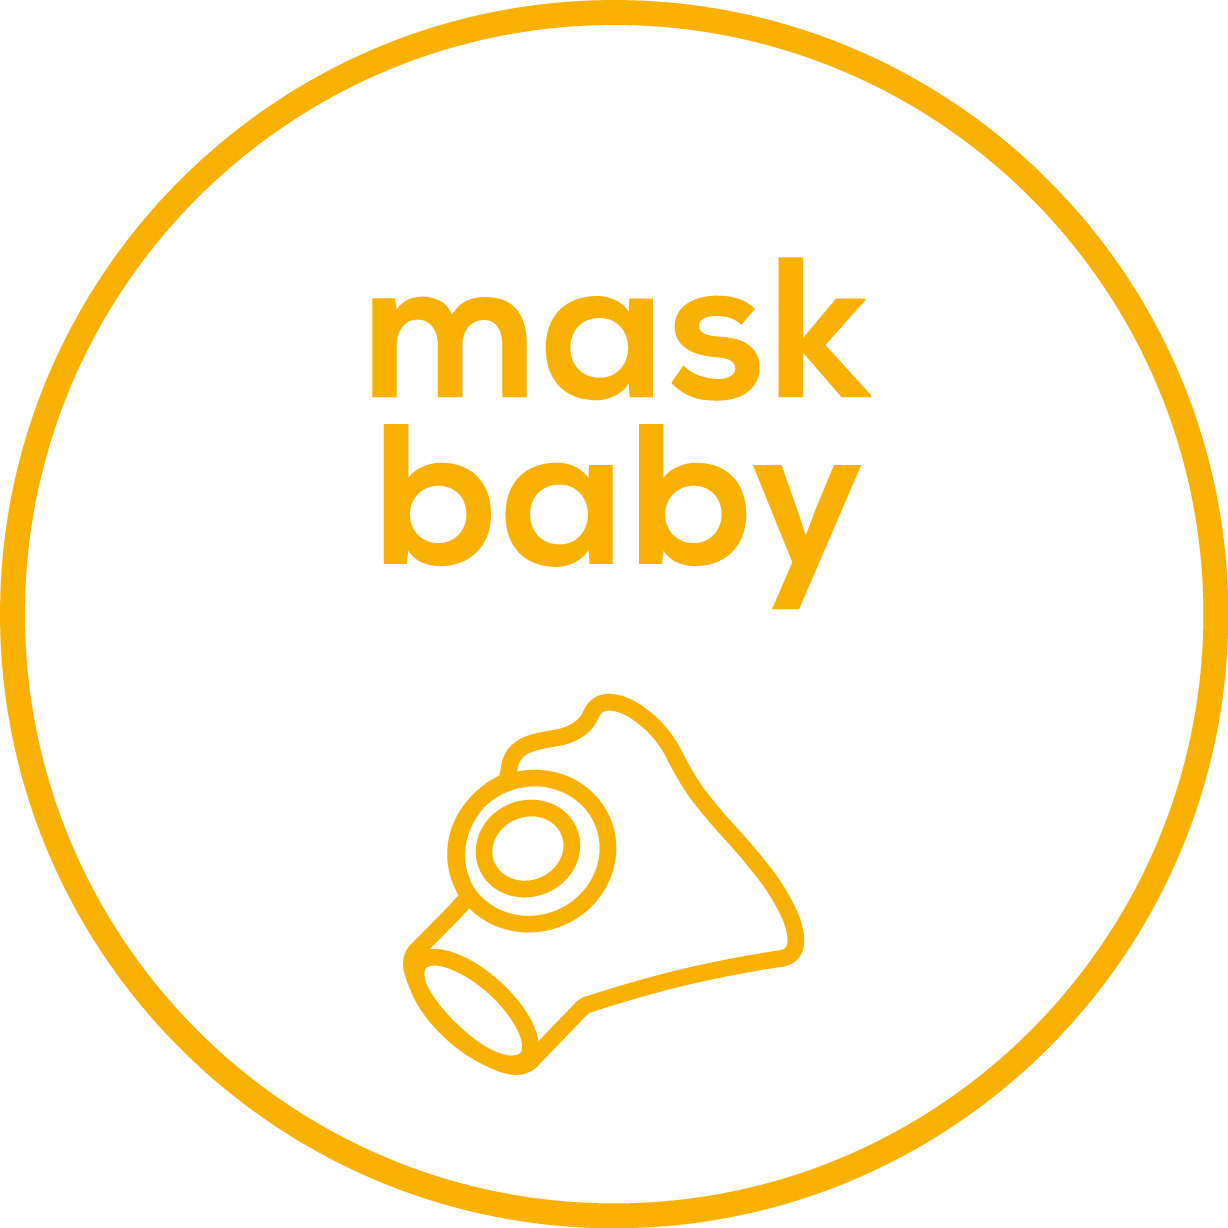 Accessories Including a baby mask